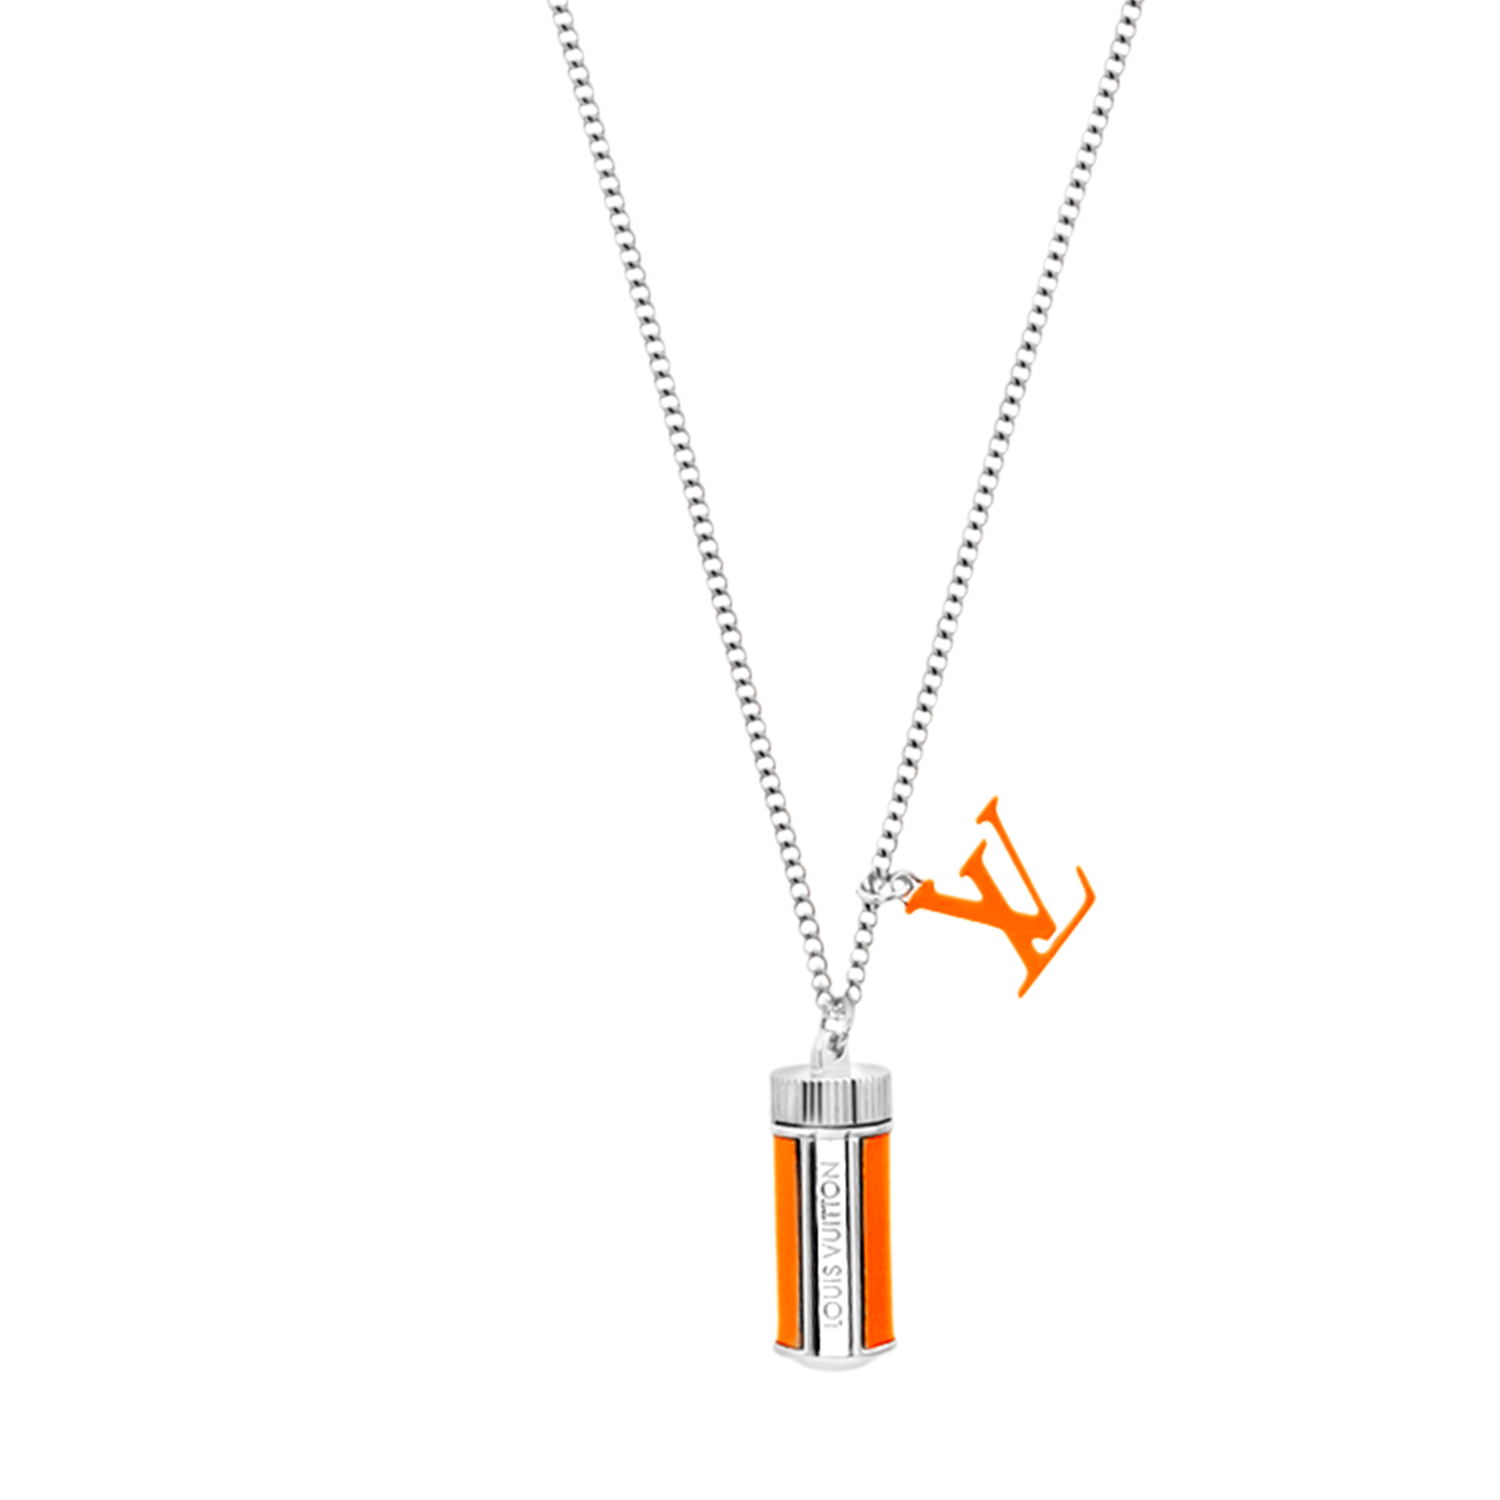 LV FLUO NECKLACE - €350 $515MP2142ORANGE